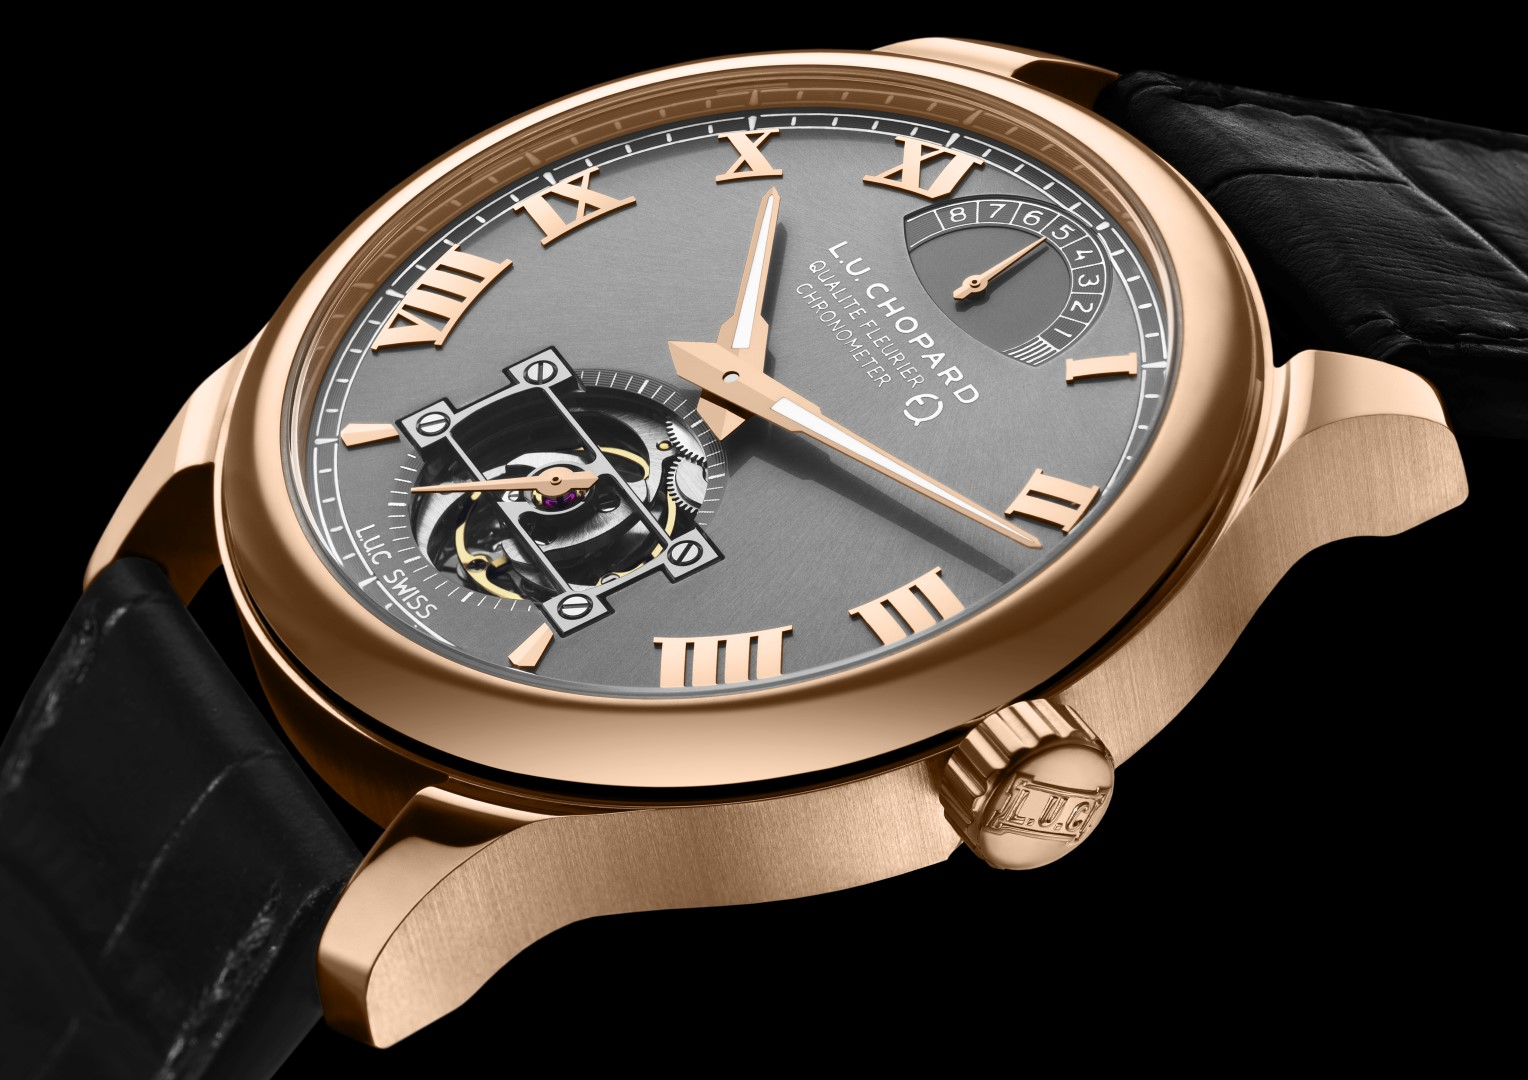 L.U.C Tourbillon QF Fairmined perfil